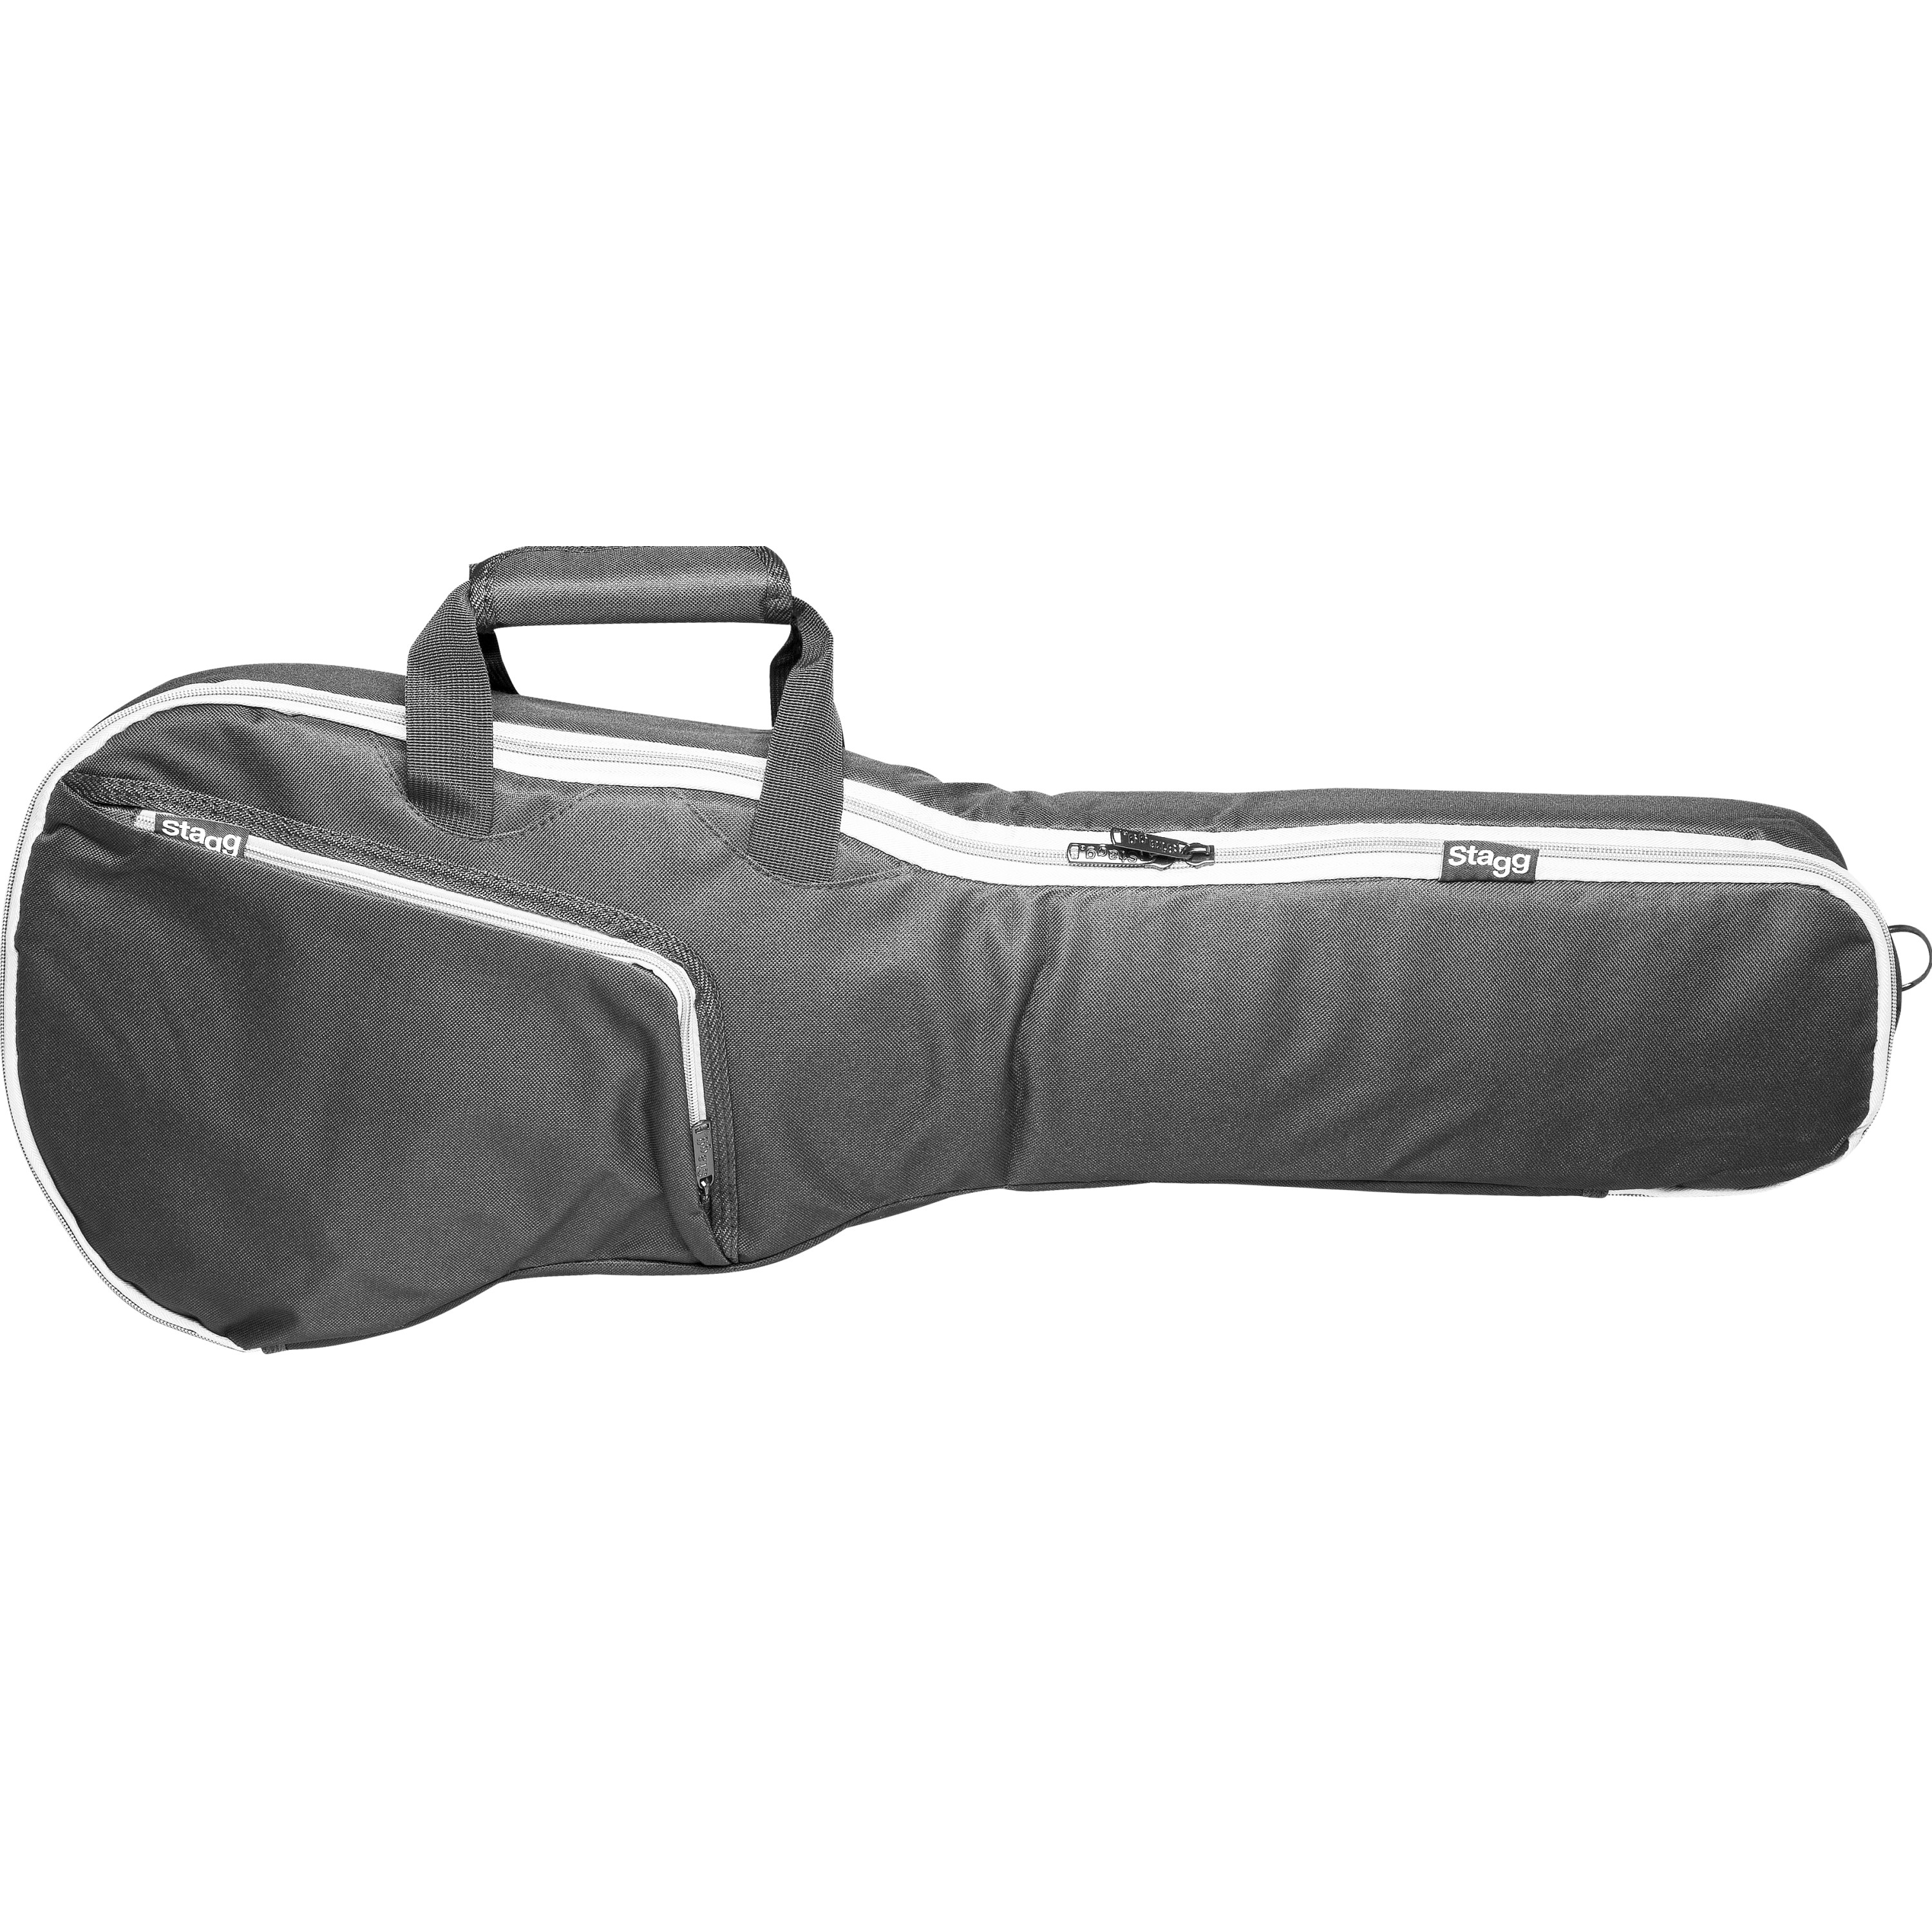 Stagg STB10 C Basic series padded water repellent nylon bag for 4/4 classical guitar